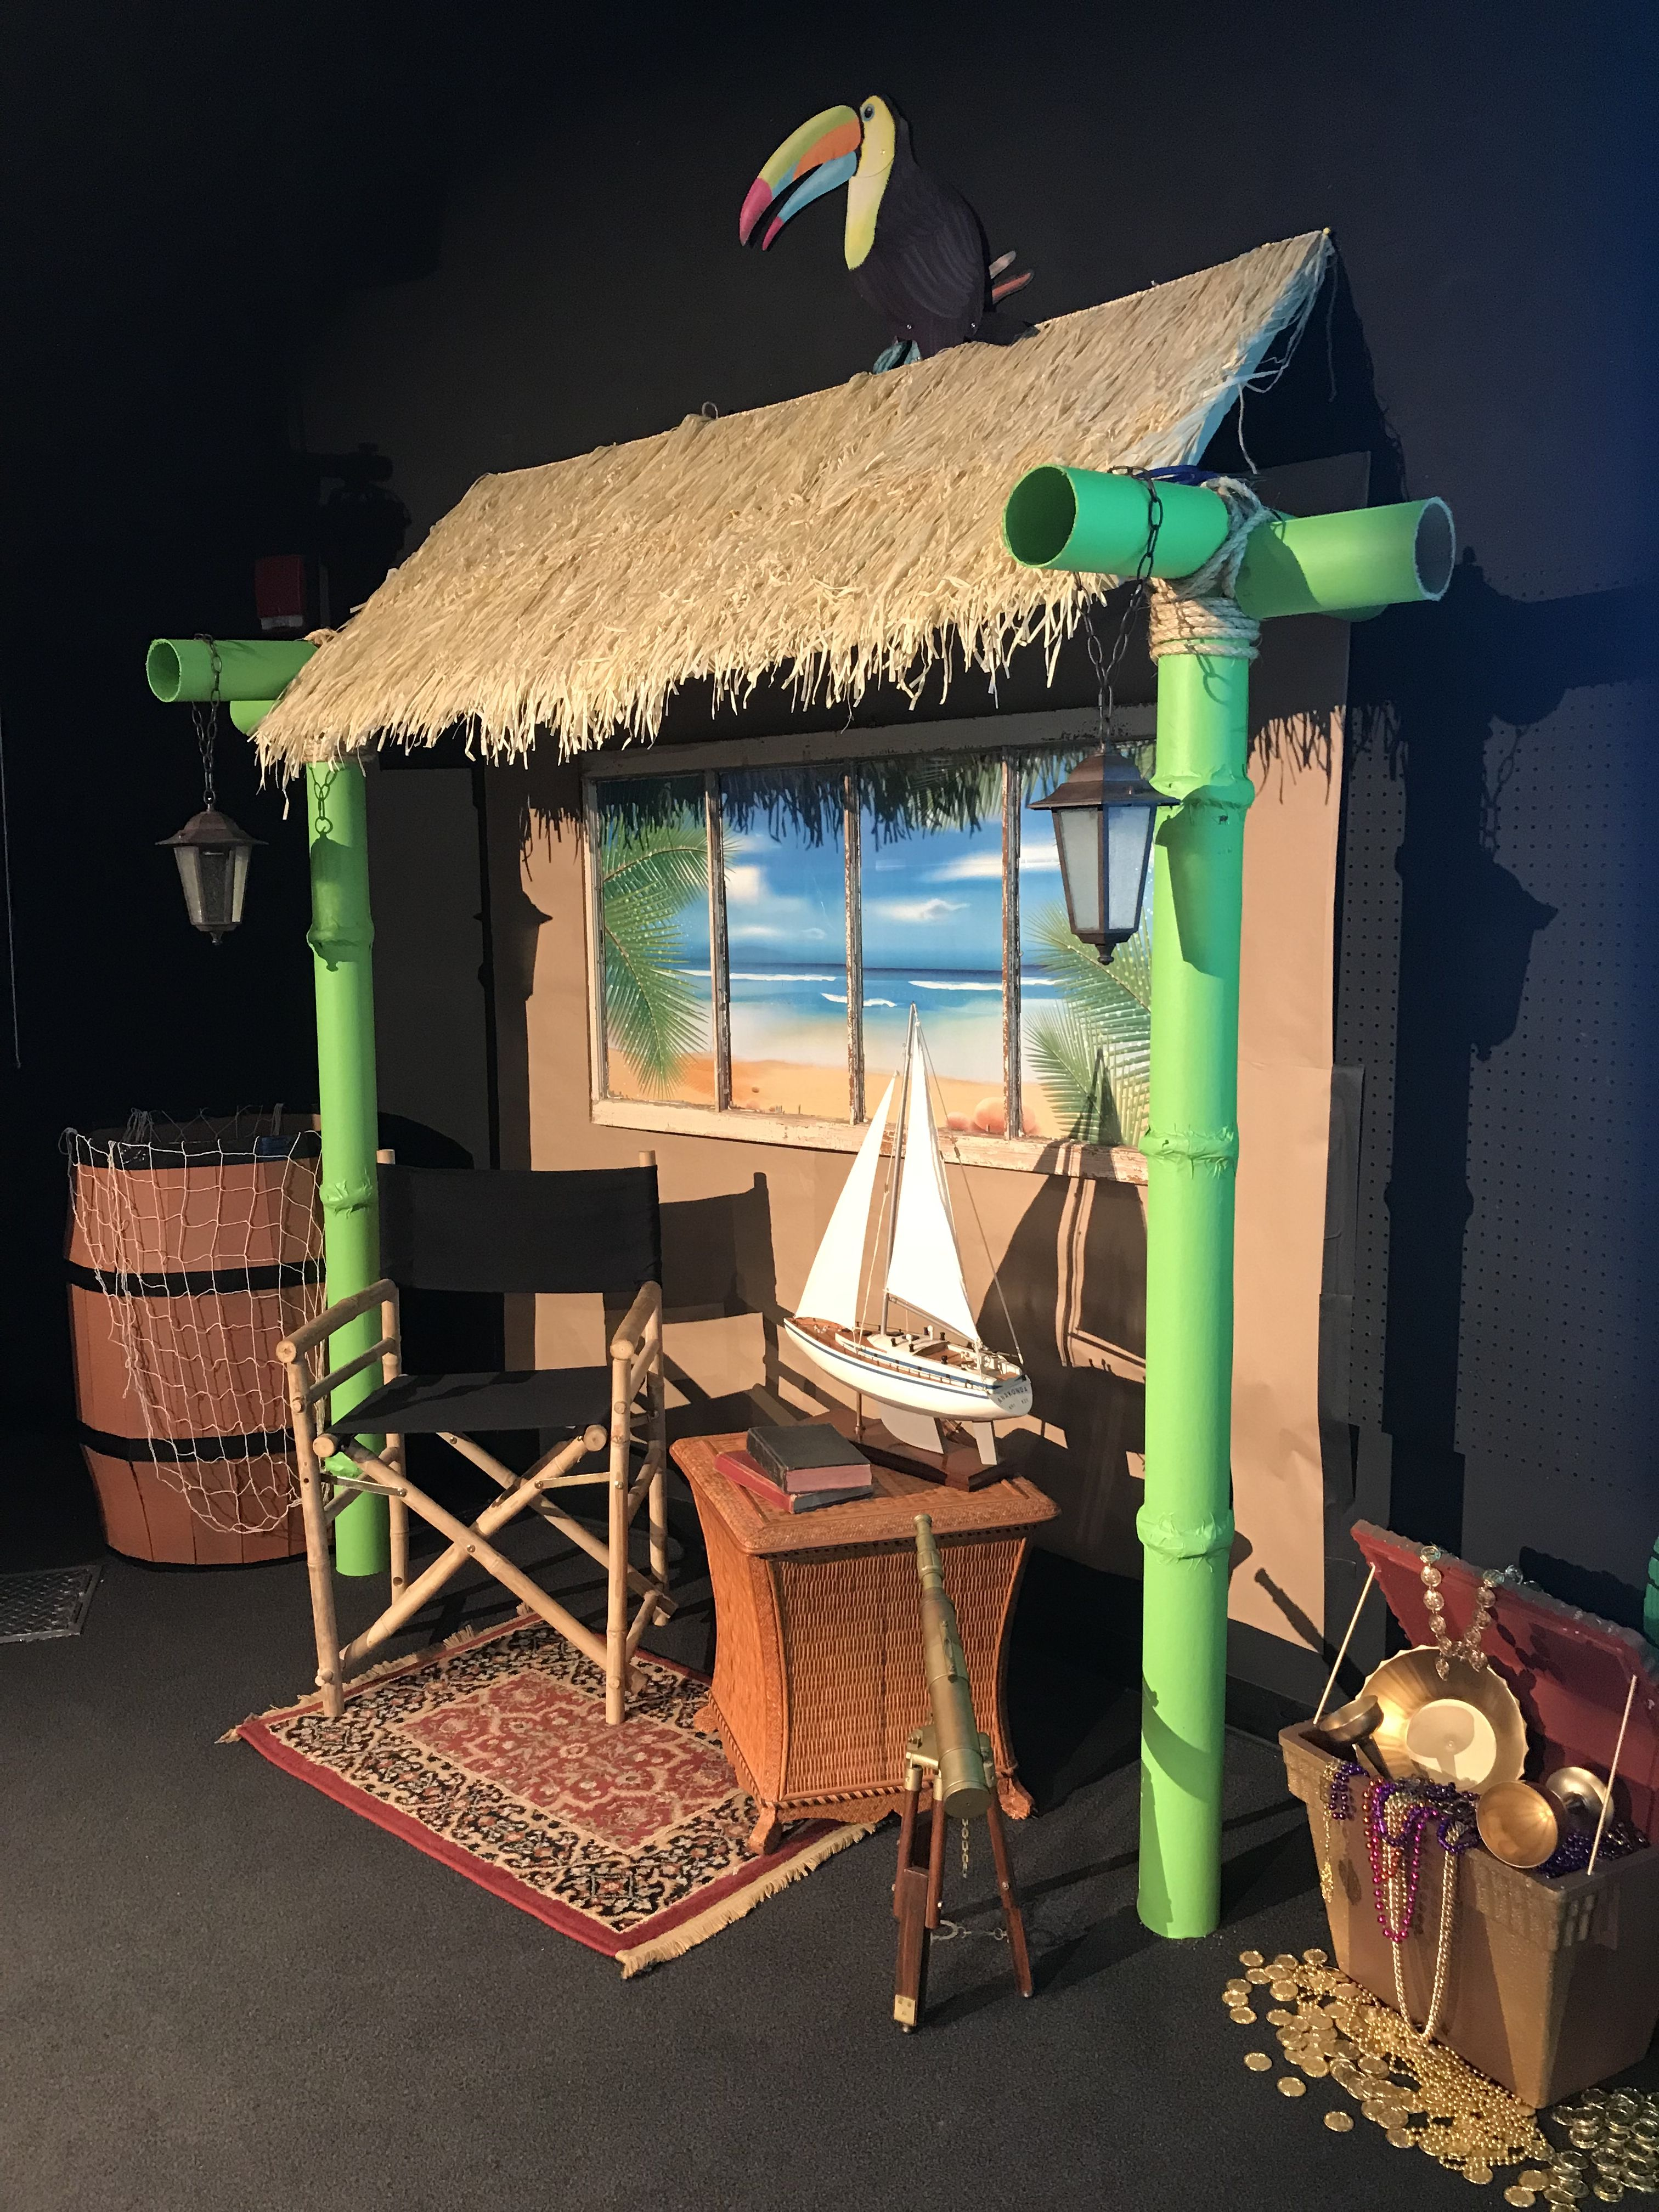 2018 Shipwrecked Vbs Stage Decorations My Diy Tiki Hut Treasure Chest From A Foam Cooler And Wooden Barrel From A Cardboard Box Vbs Crafts Tiki Hut Vbs